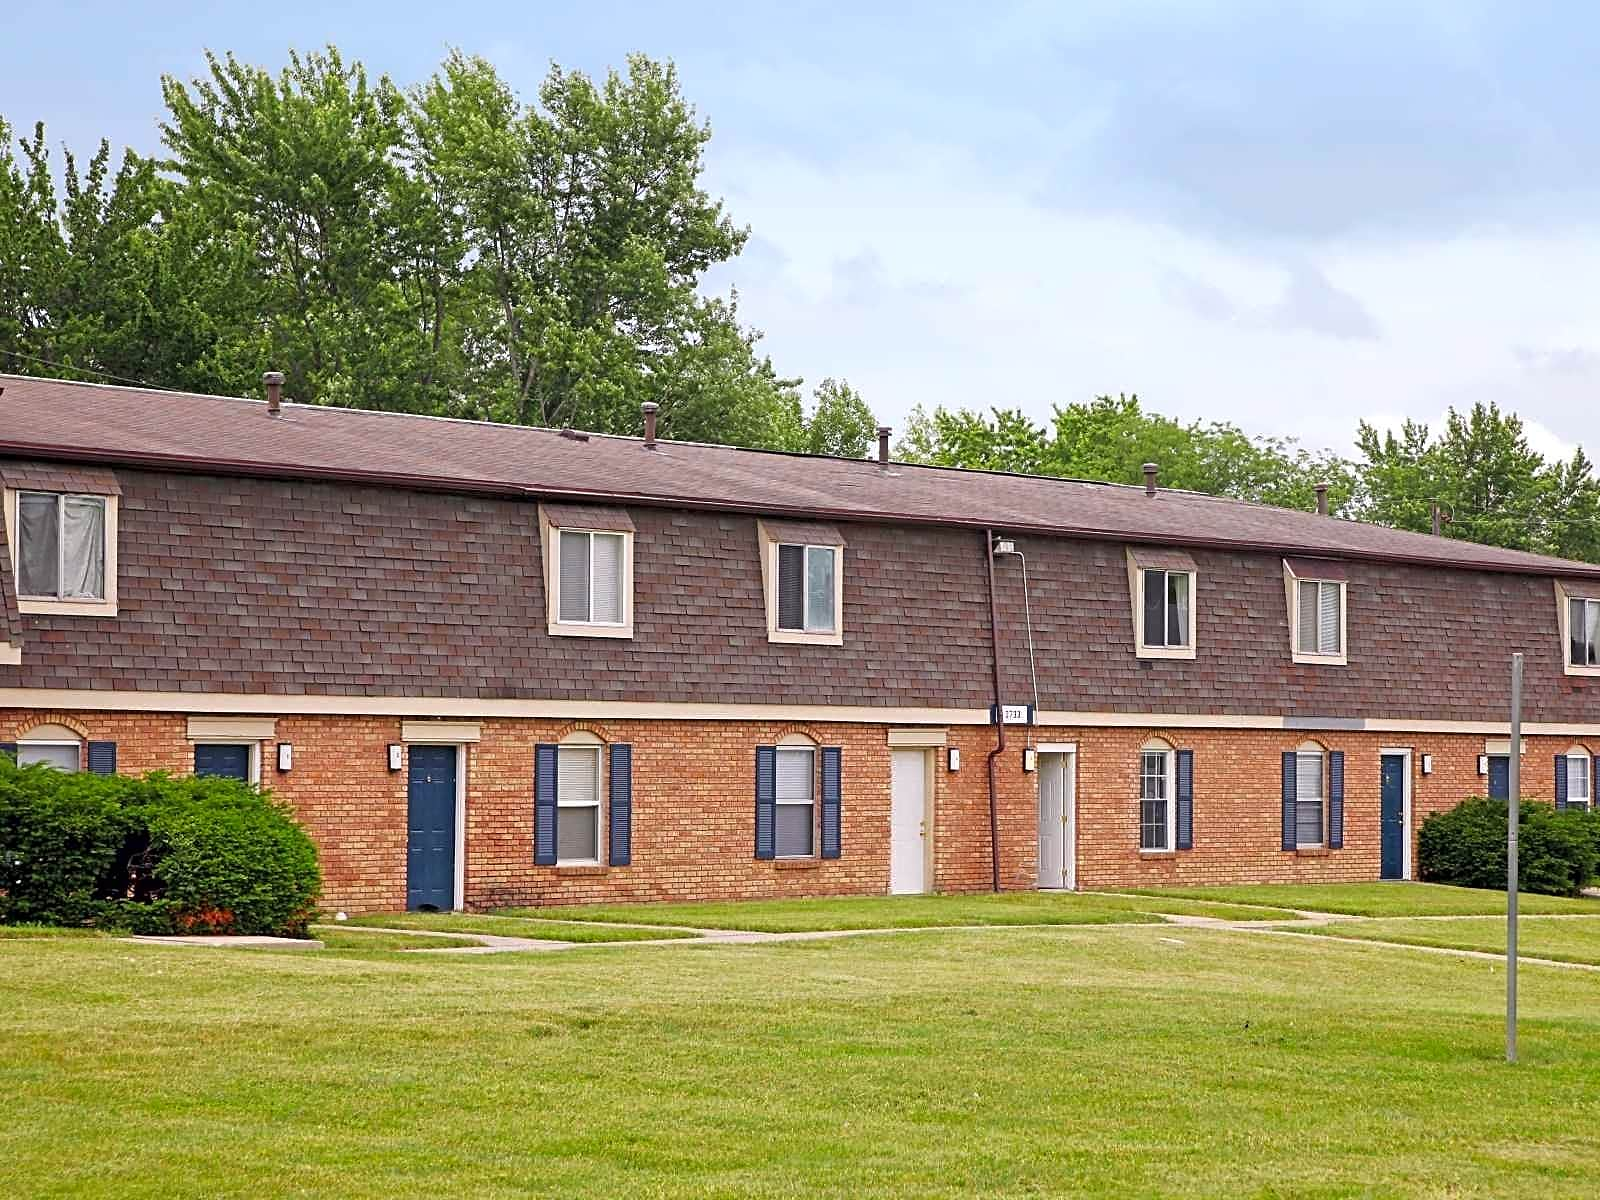 Photo: Fort Wayne Apartment for Rent - $599.00 / month; 3 Bd & 1 Ba